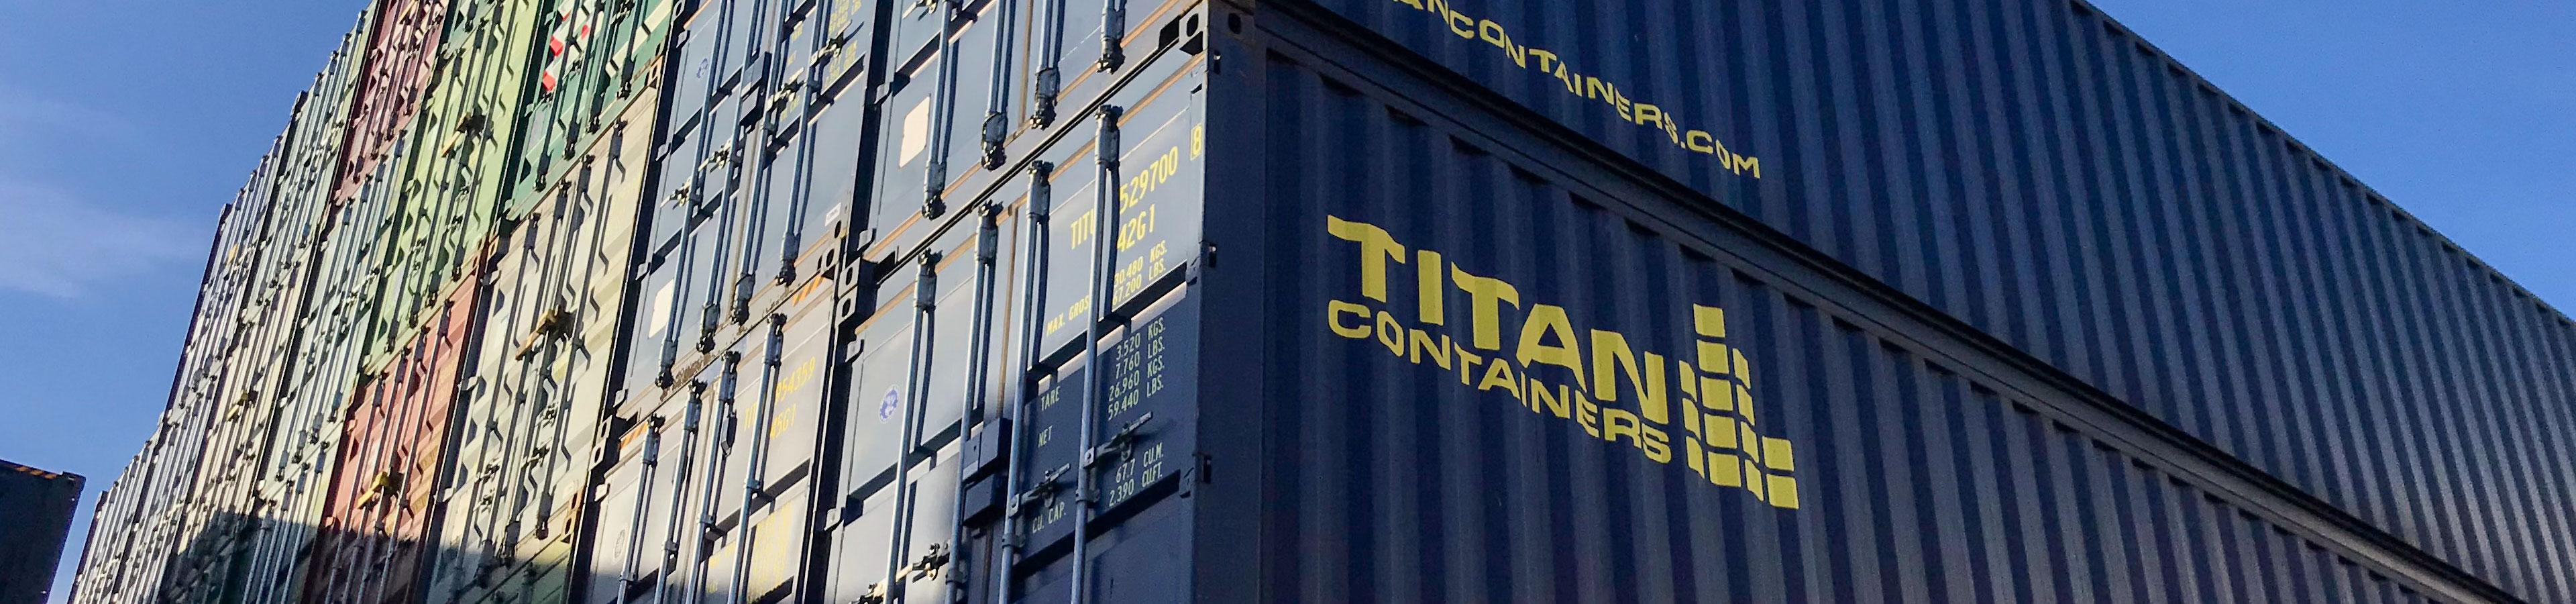 TITAN CONTAINERS 40FT STORAGE CONTAINERS